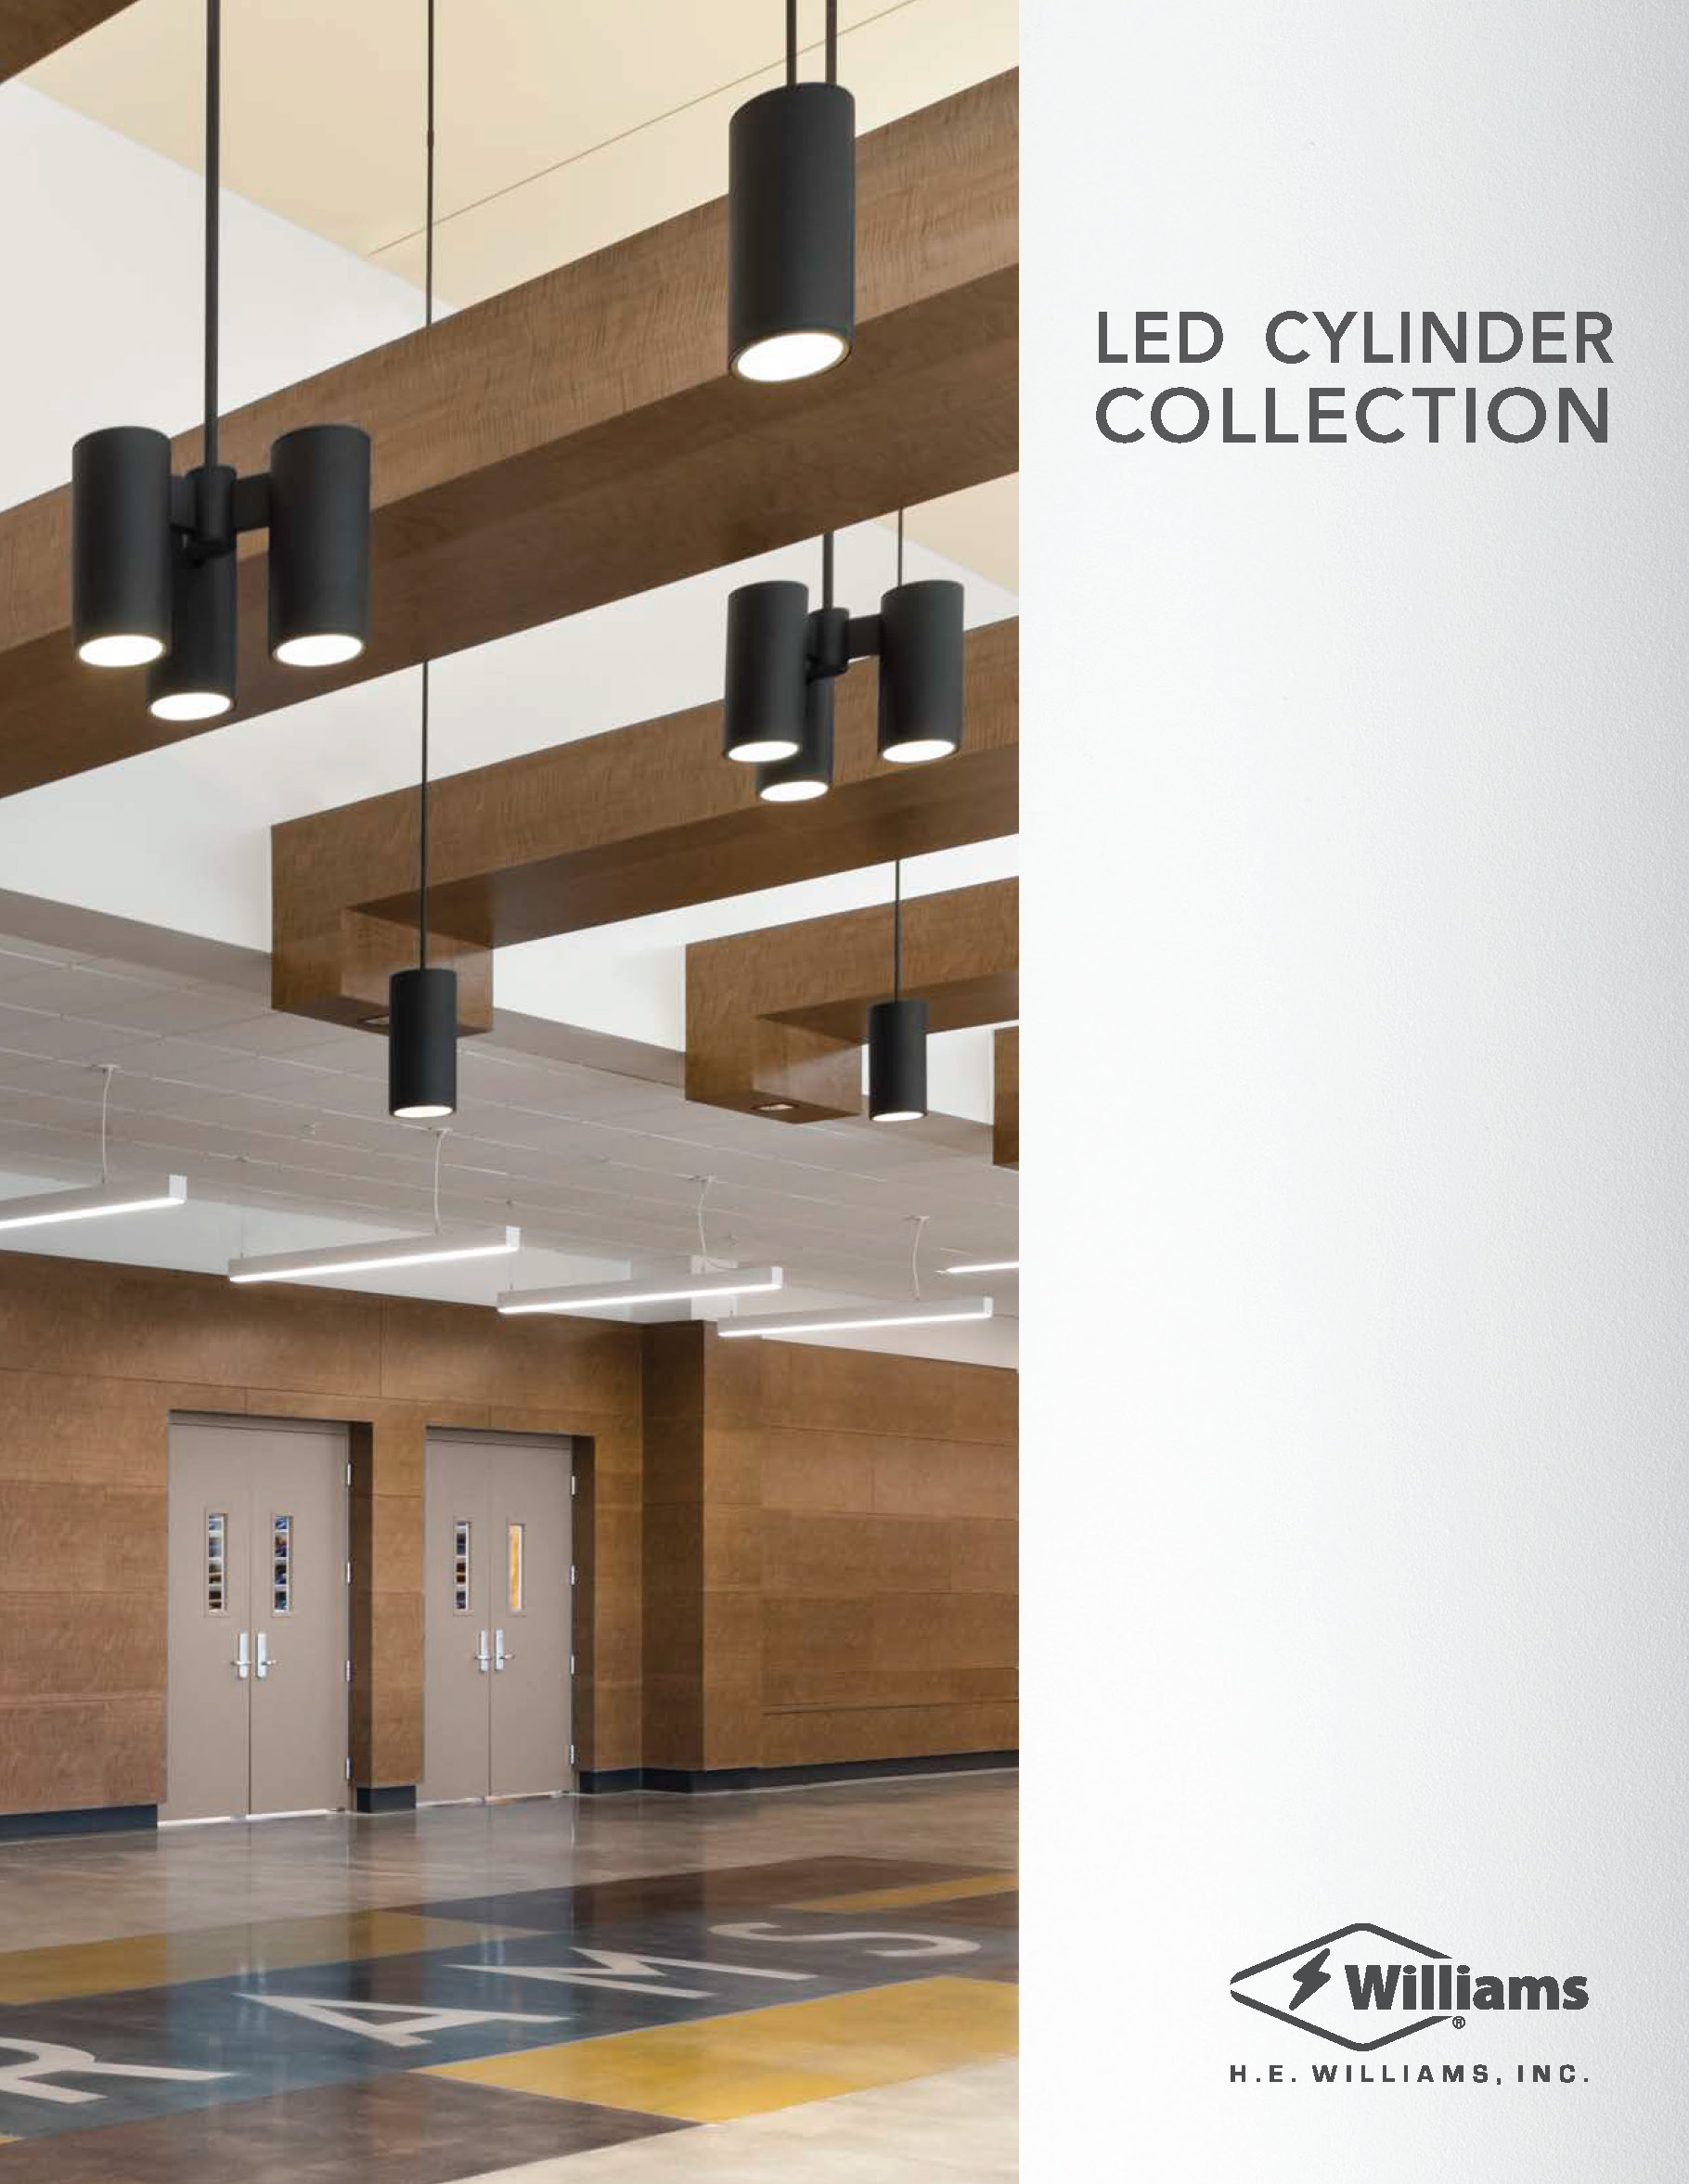 Whether you want to make a unique statement or add an elegant touch, the Williams LED Cylinder collection lets you decide how the light shines.